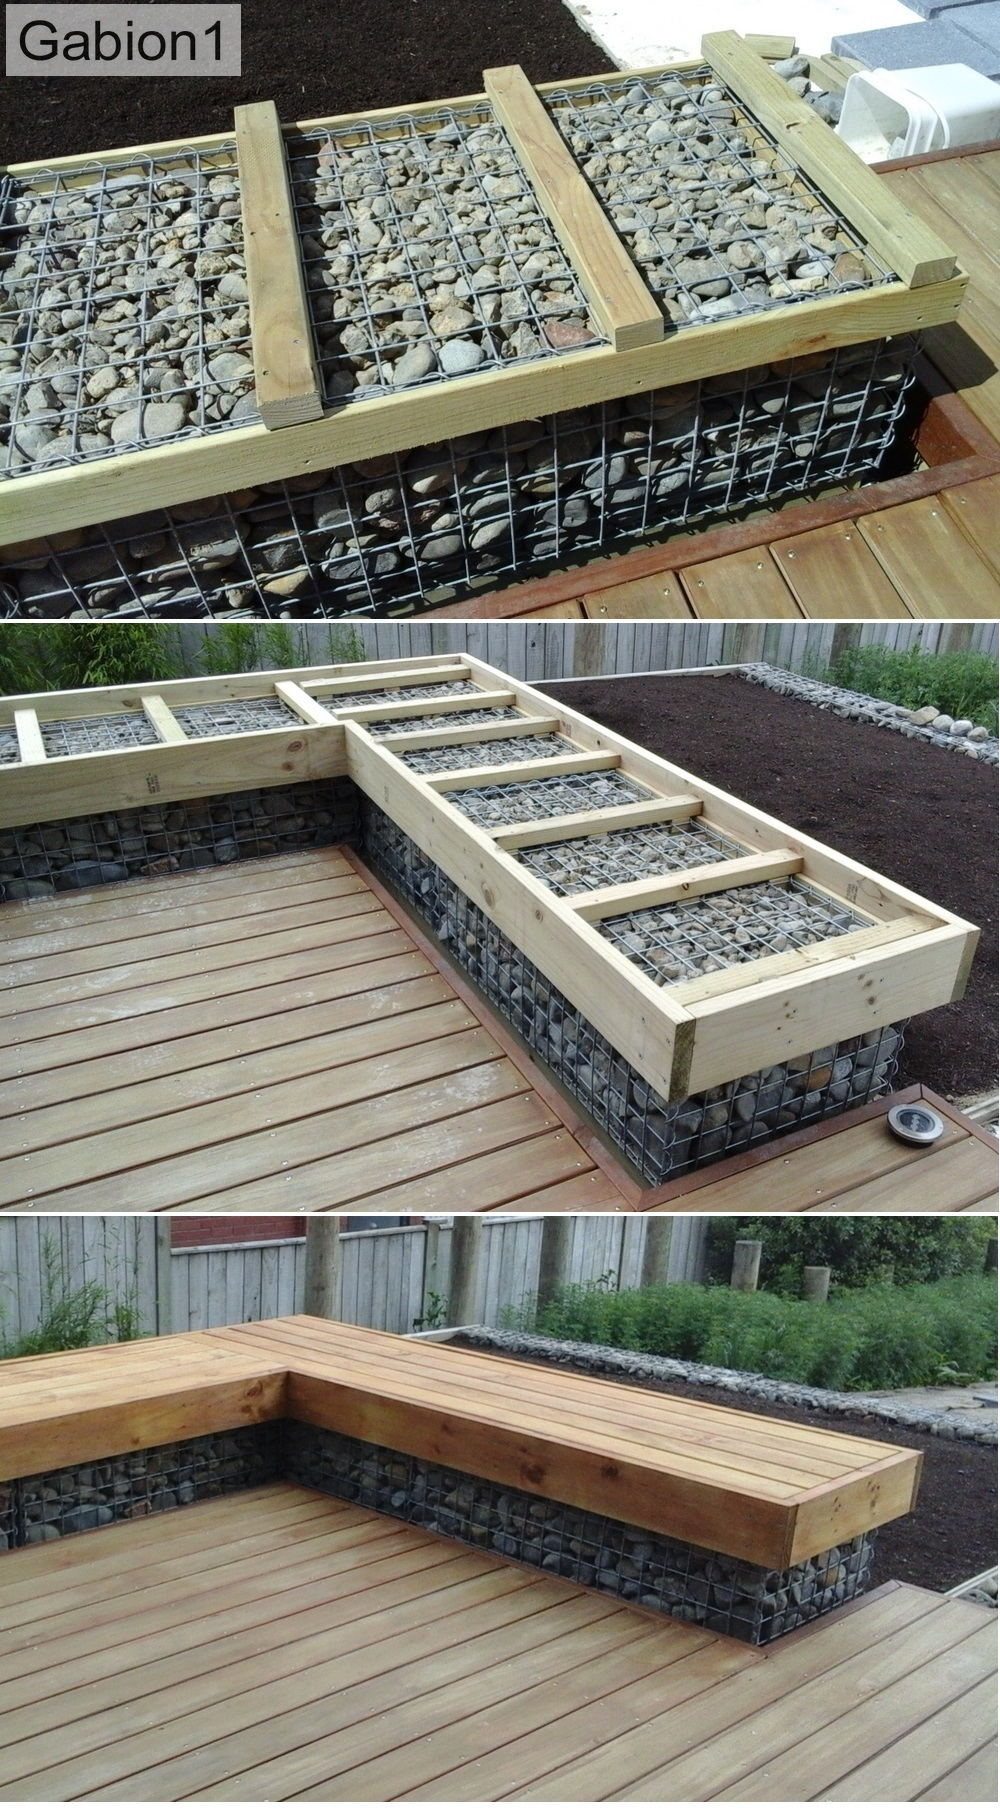 gabion bench detail